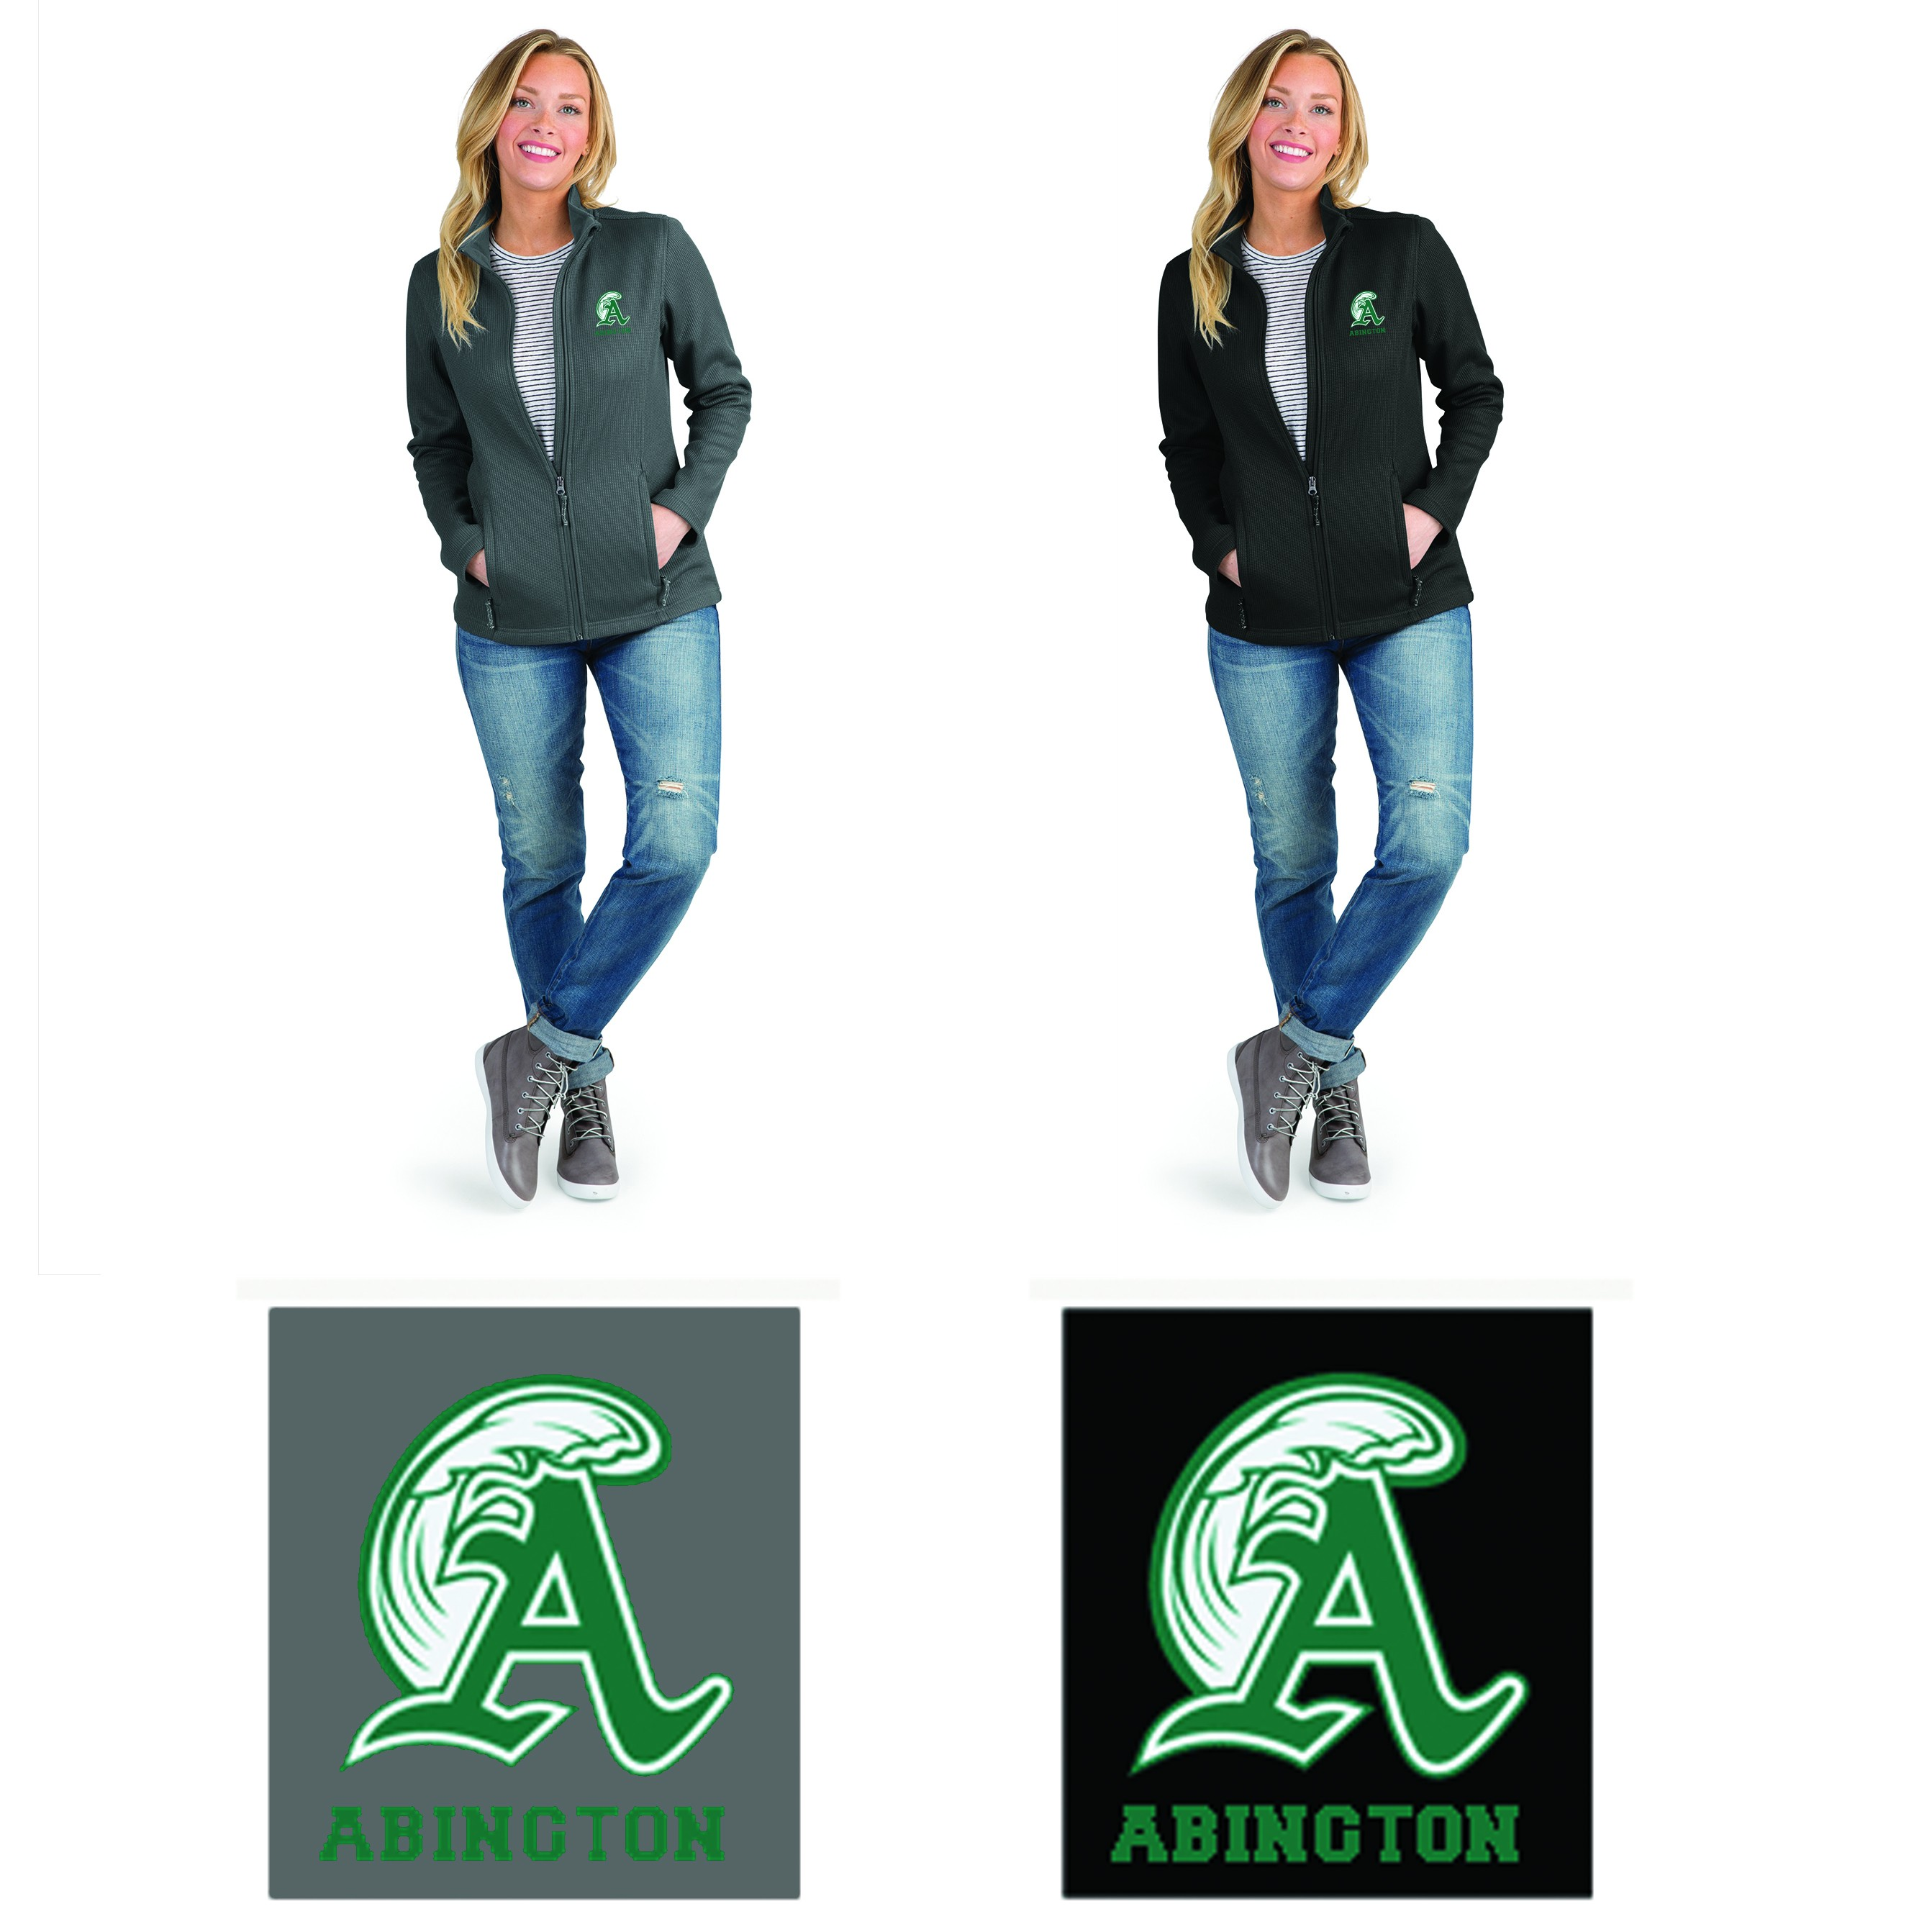 Abington Greenwave Boosters Charles River Women's Heritage Rib Knit Jacket